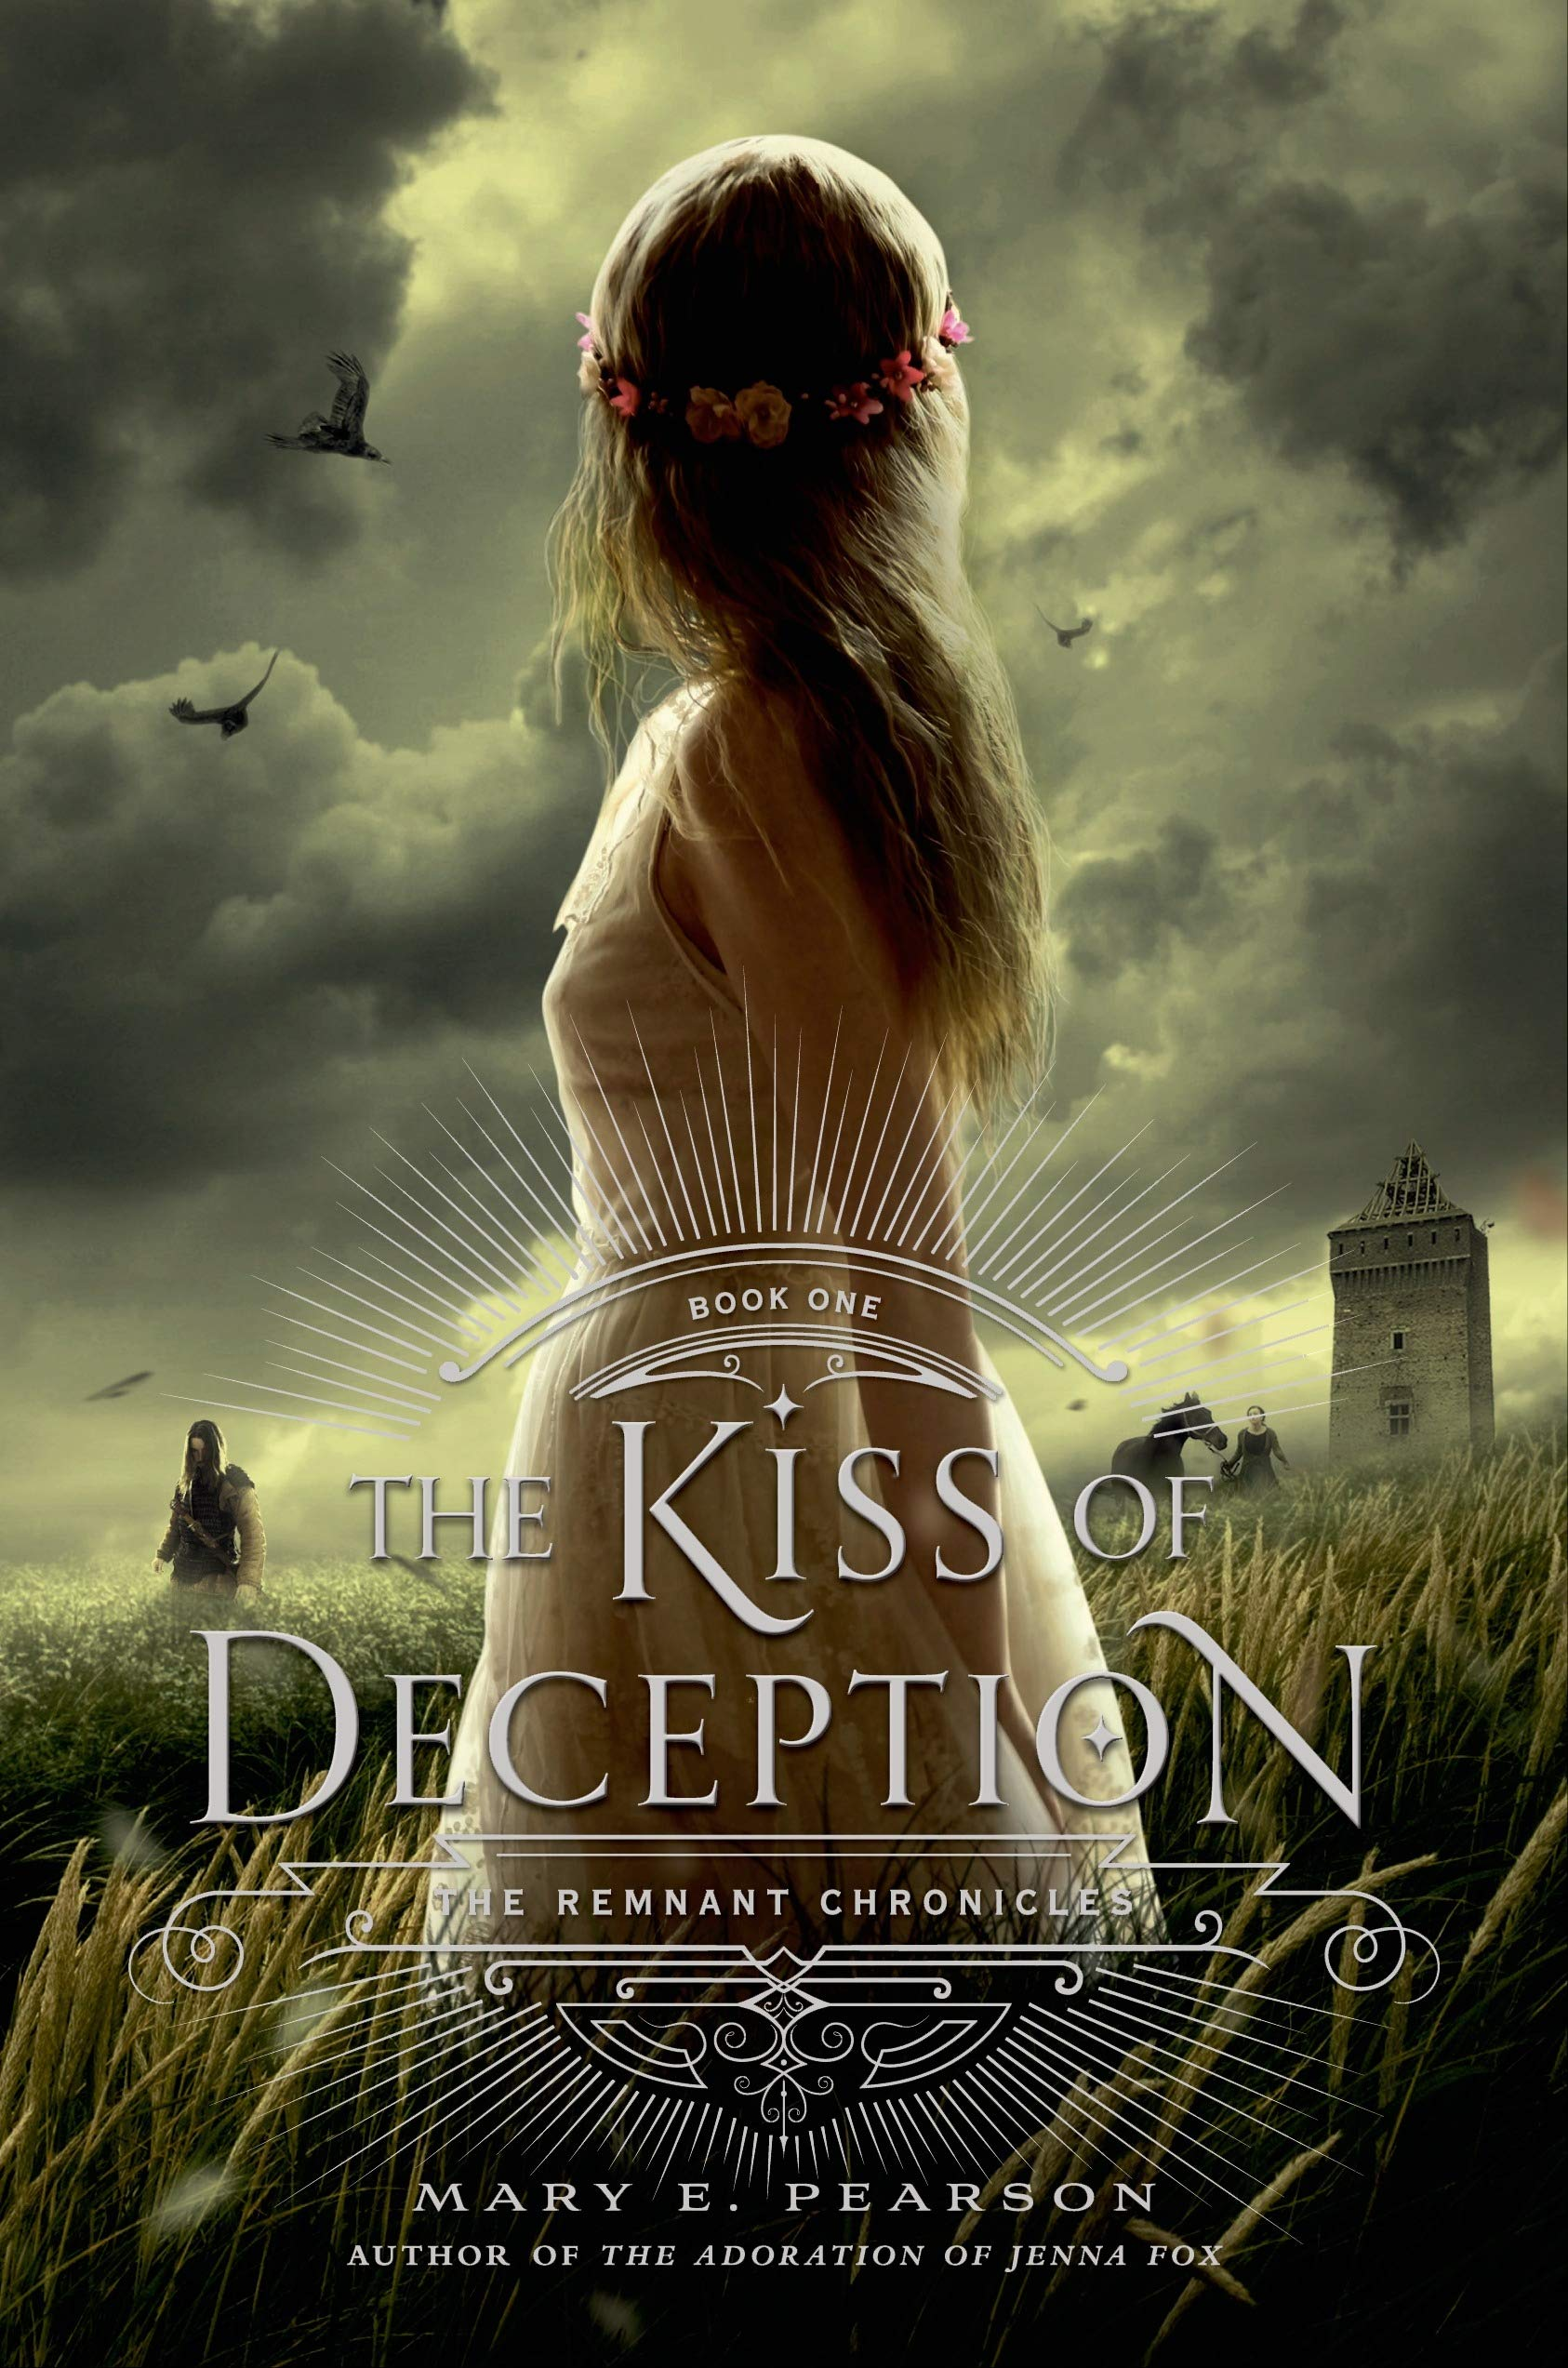 Amazon.com: The Kiss of Deception: The Remnant Chronicles, Book One  (9780805099232): Pearson, Mary E.: Books